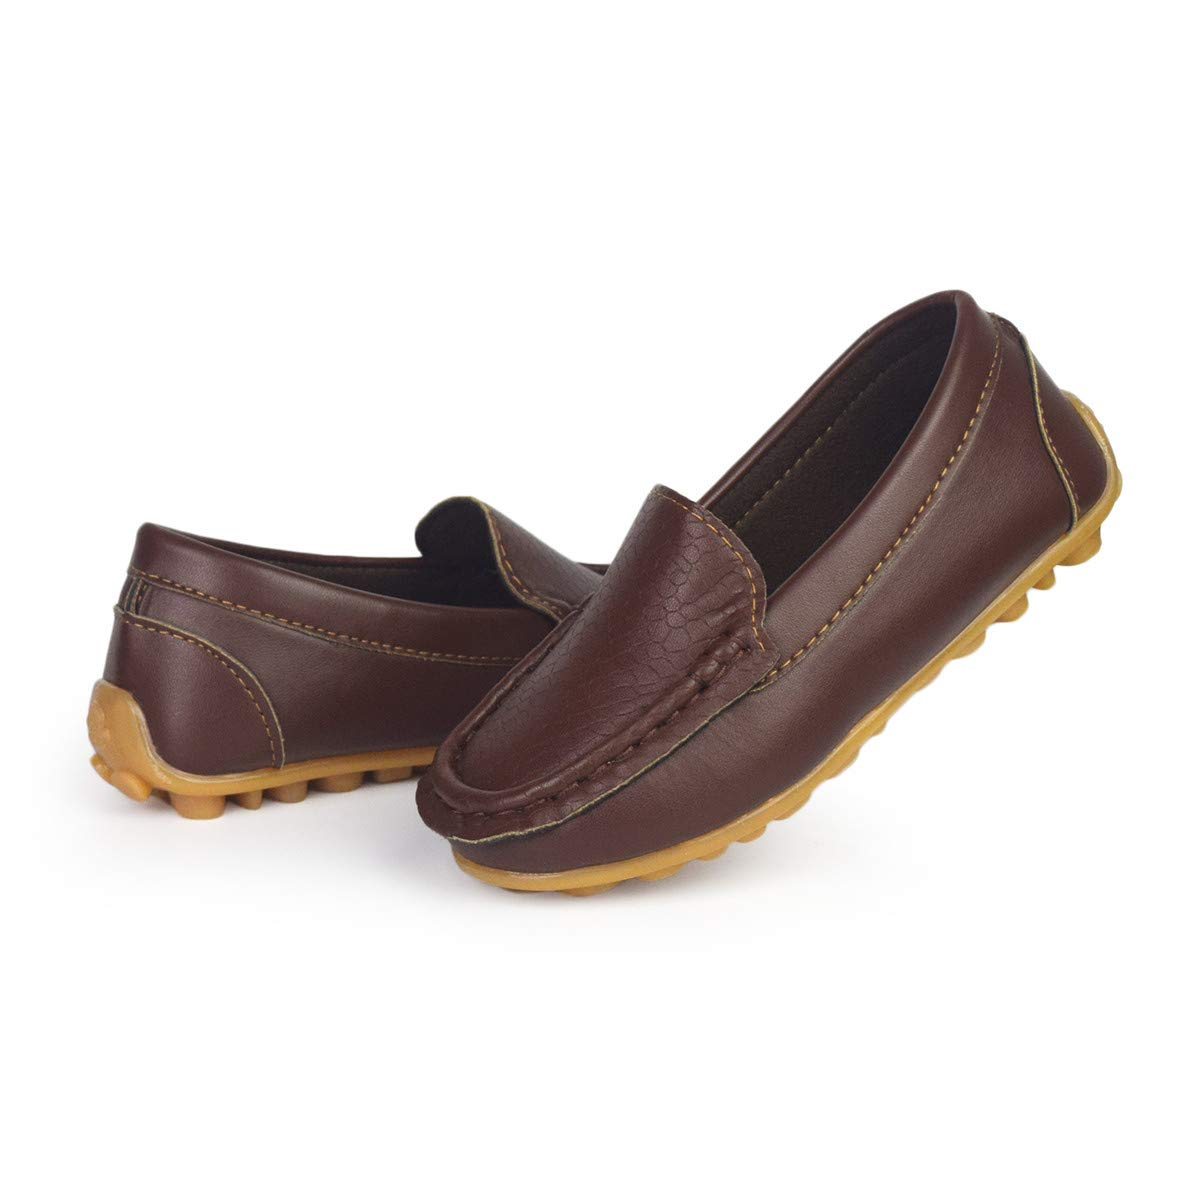 Toddler//Little Kid Kids Boys Girls Leather Loafers Slip On Oxford Flats Boat Dress Schooling Daily Walking Slippers Shoes